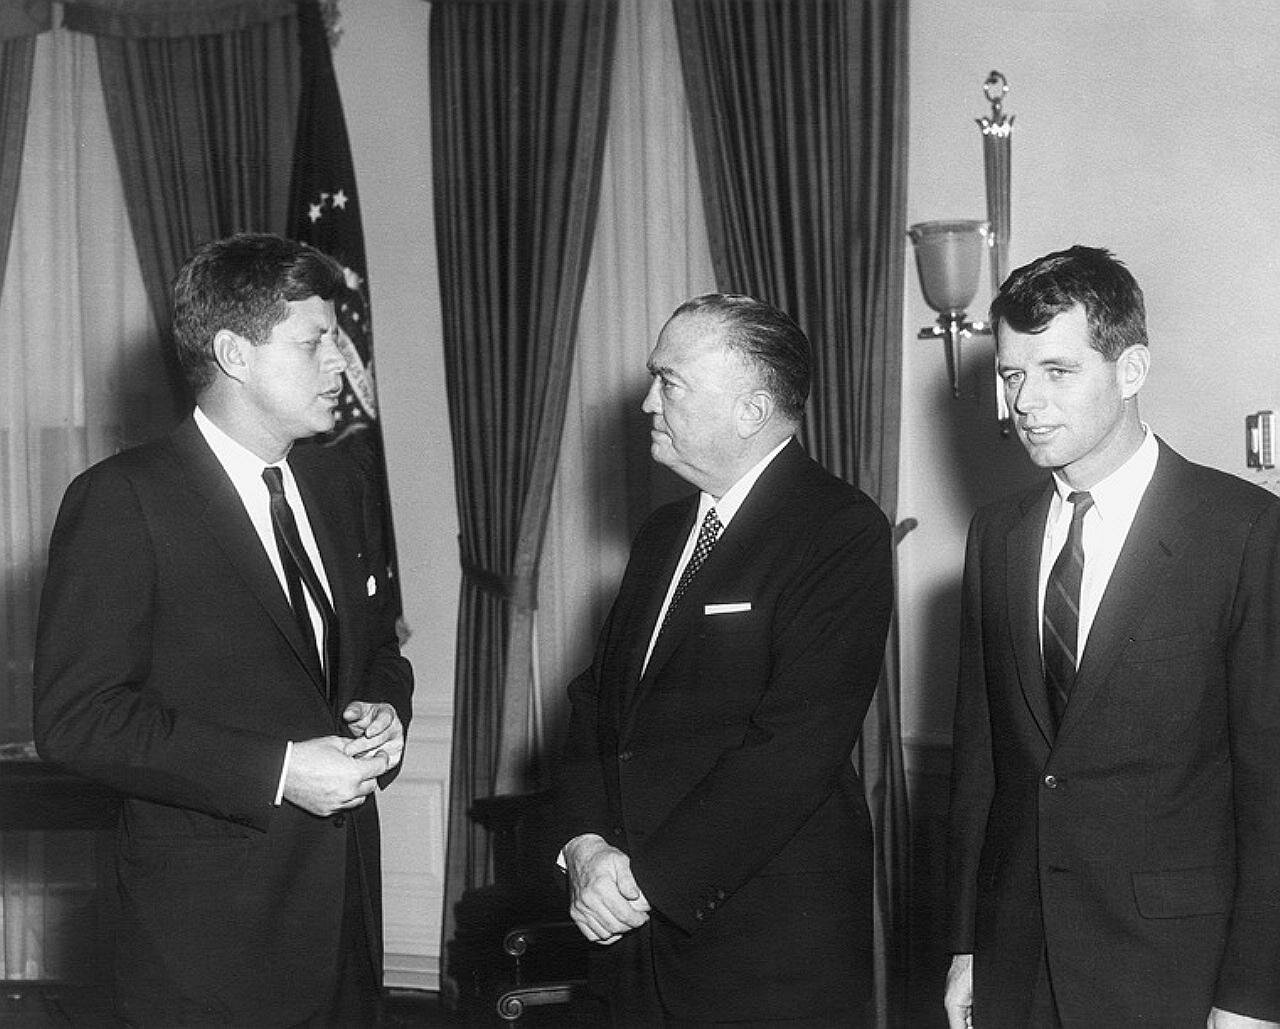 23 February 1961  Meeting with the Attorney General and Director of the Federal Bureau of Investigation. President Kennedy, Director Hoover, Attorney General Kennedy. White House, Oval Office. Photograph by Abbie Rowe